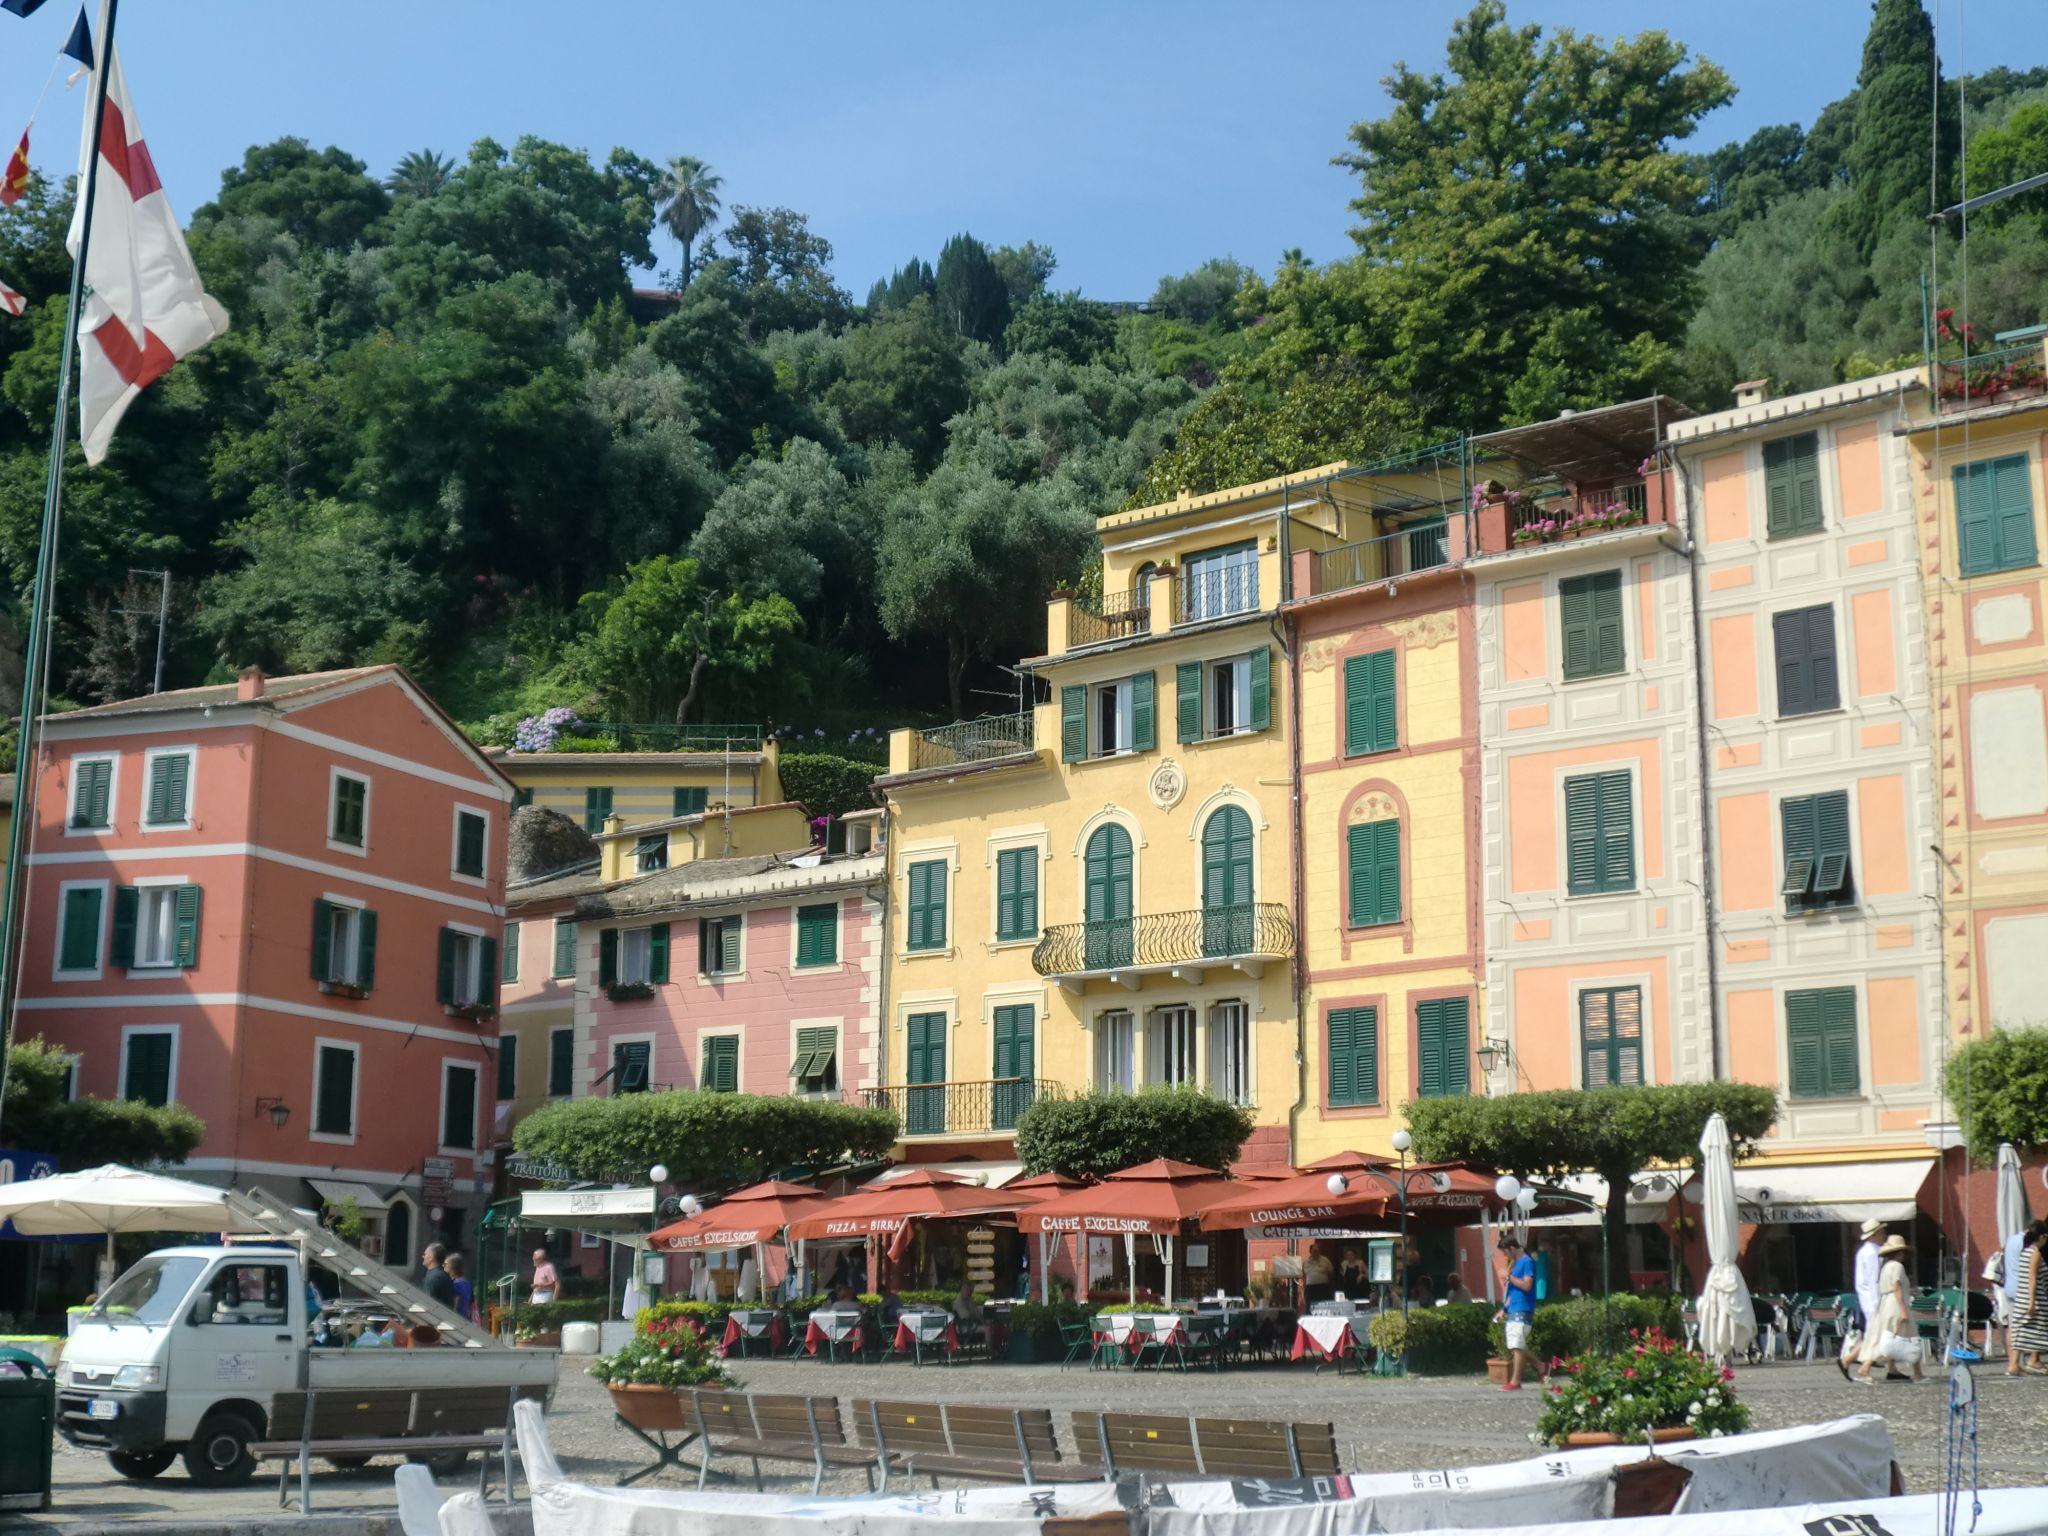 Portofino 3 - Portofino: a small pearl on the sea